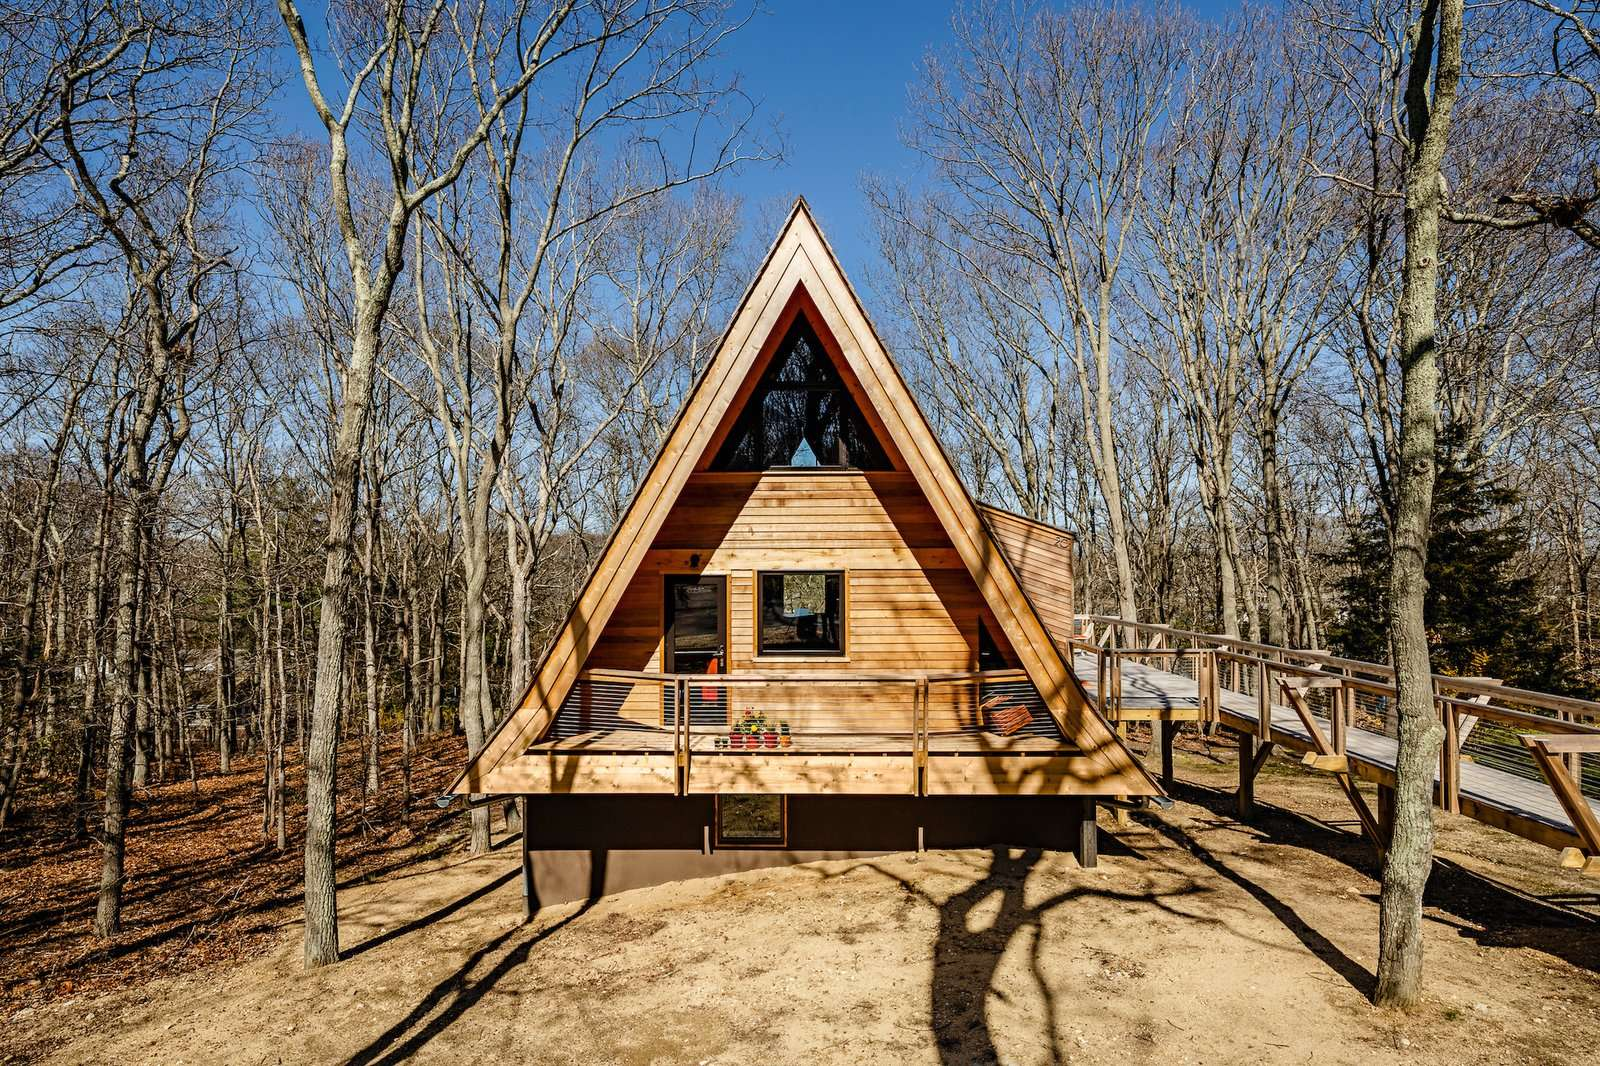 The triangular form of the 1,189-square-foot A-frame cabin, which sits in a small forest of oak trees on Long Island, has been emphasized as part of the renovation.